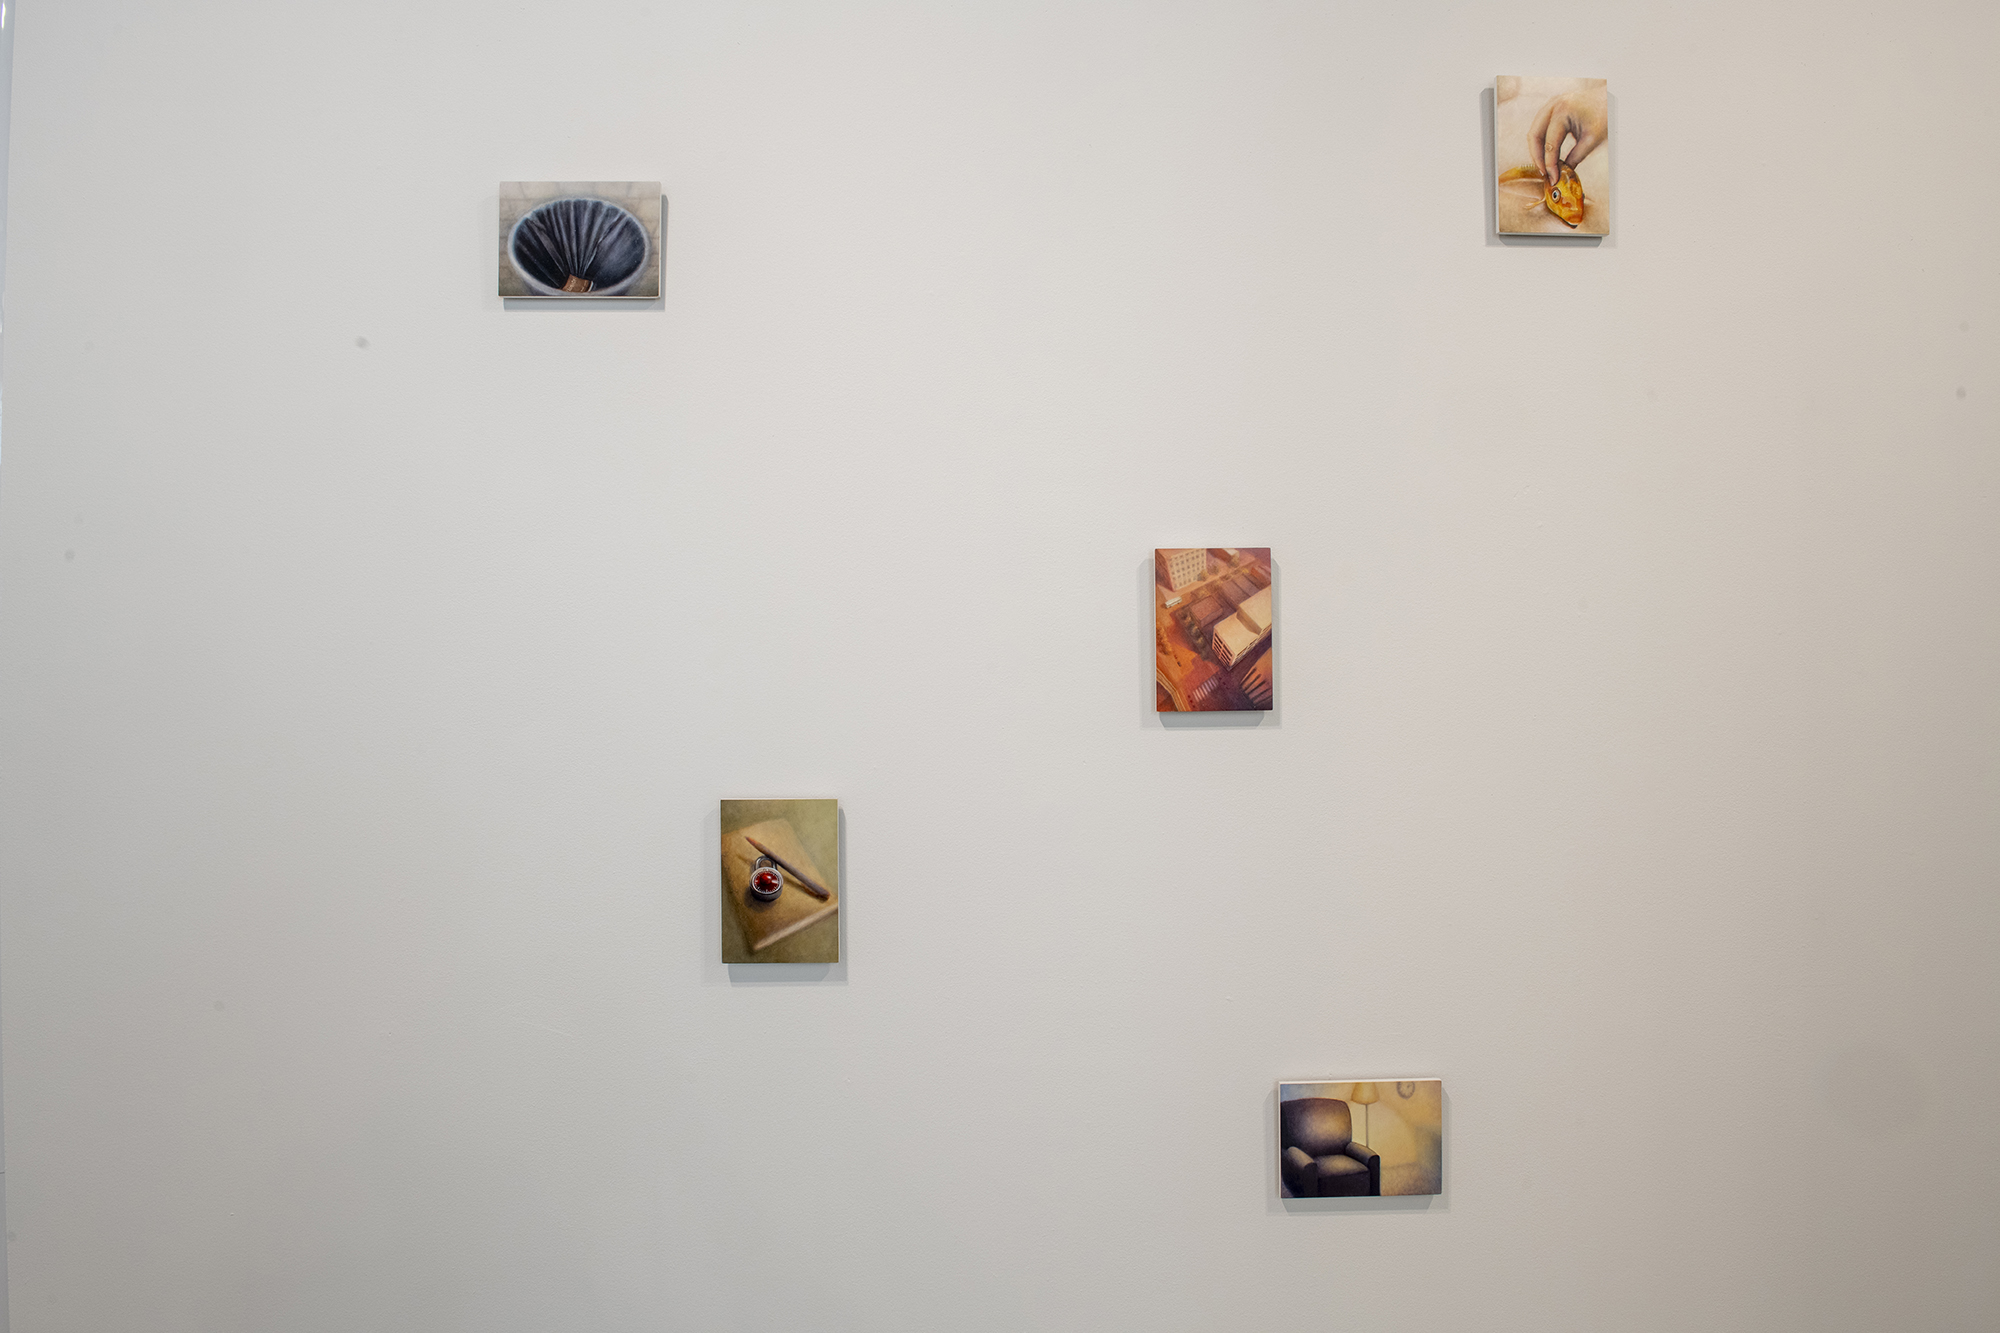 A series of small paintings on a wall.